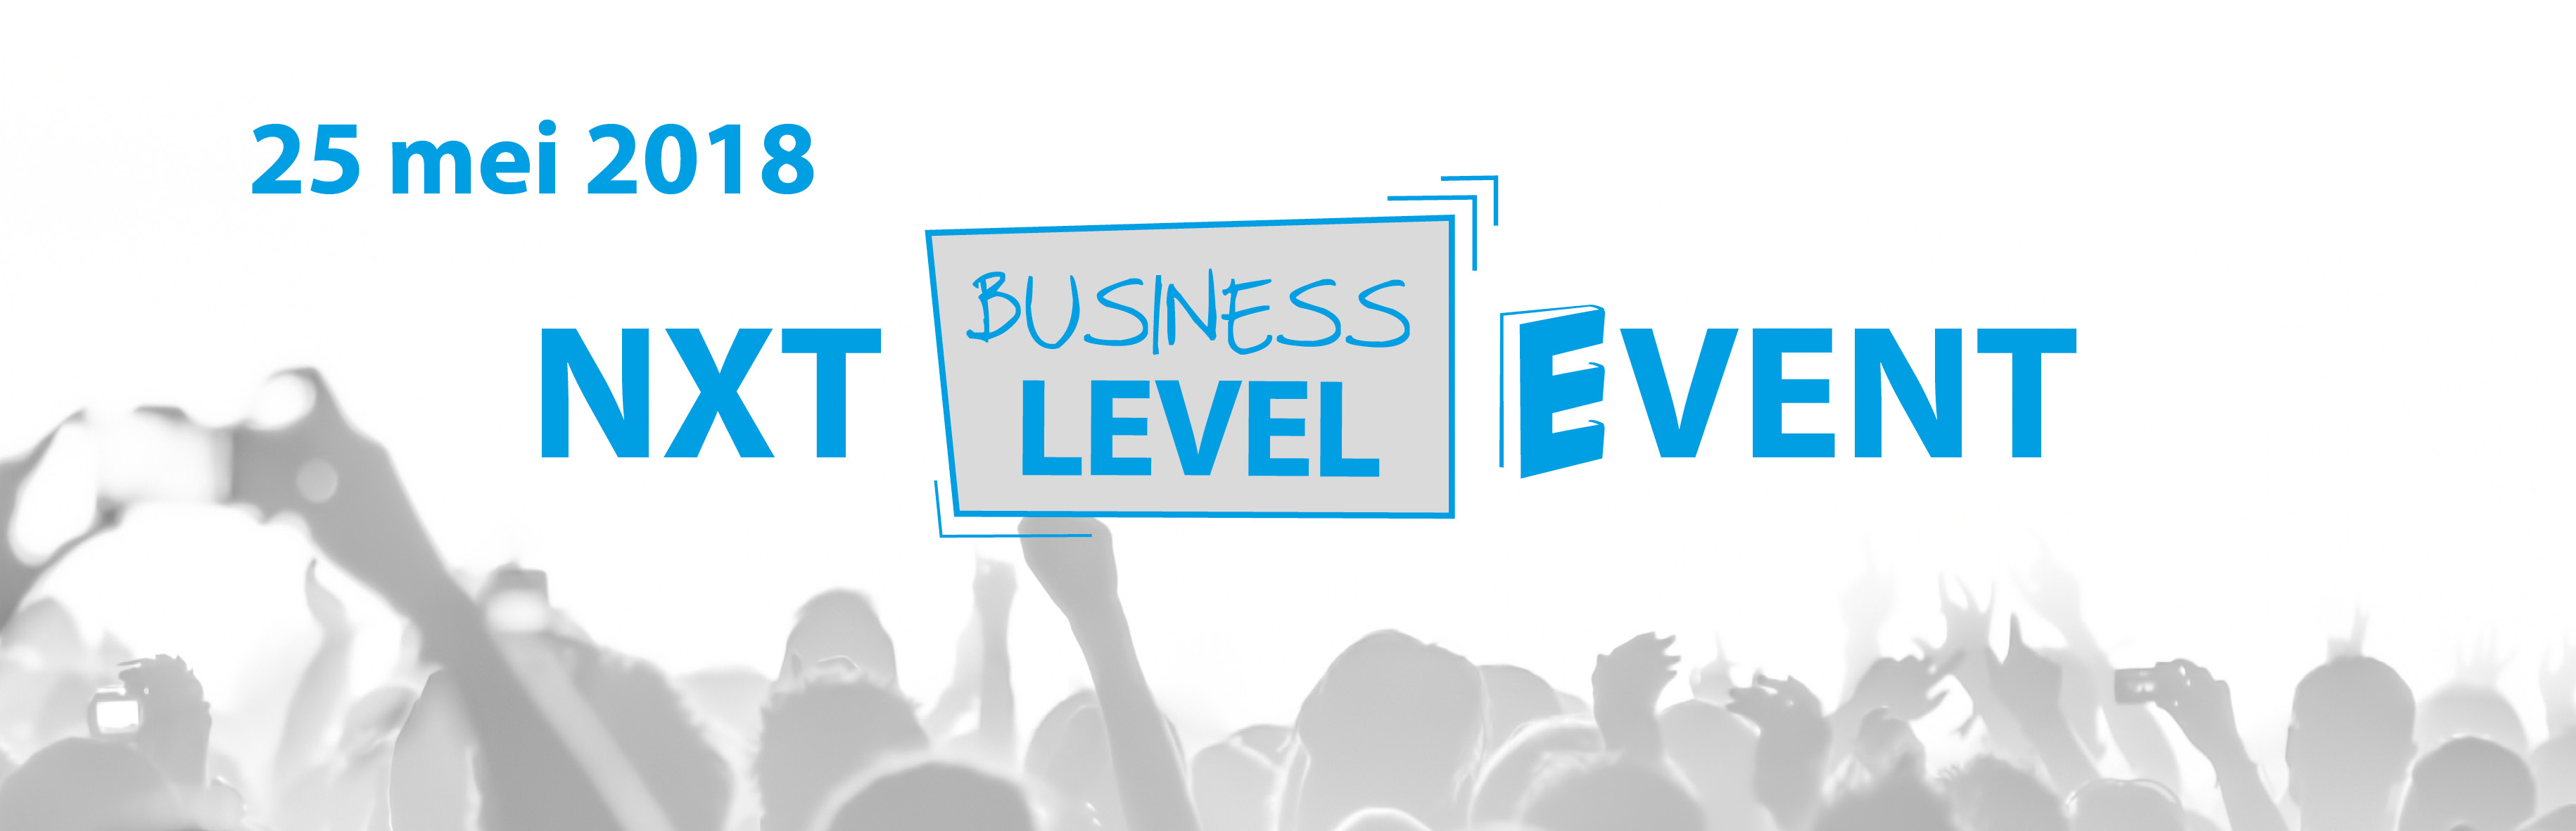 NXT BUSINESS LEVEL EVENT Basis Ticket